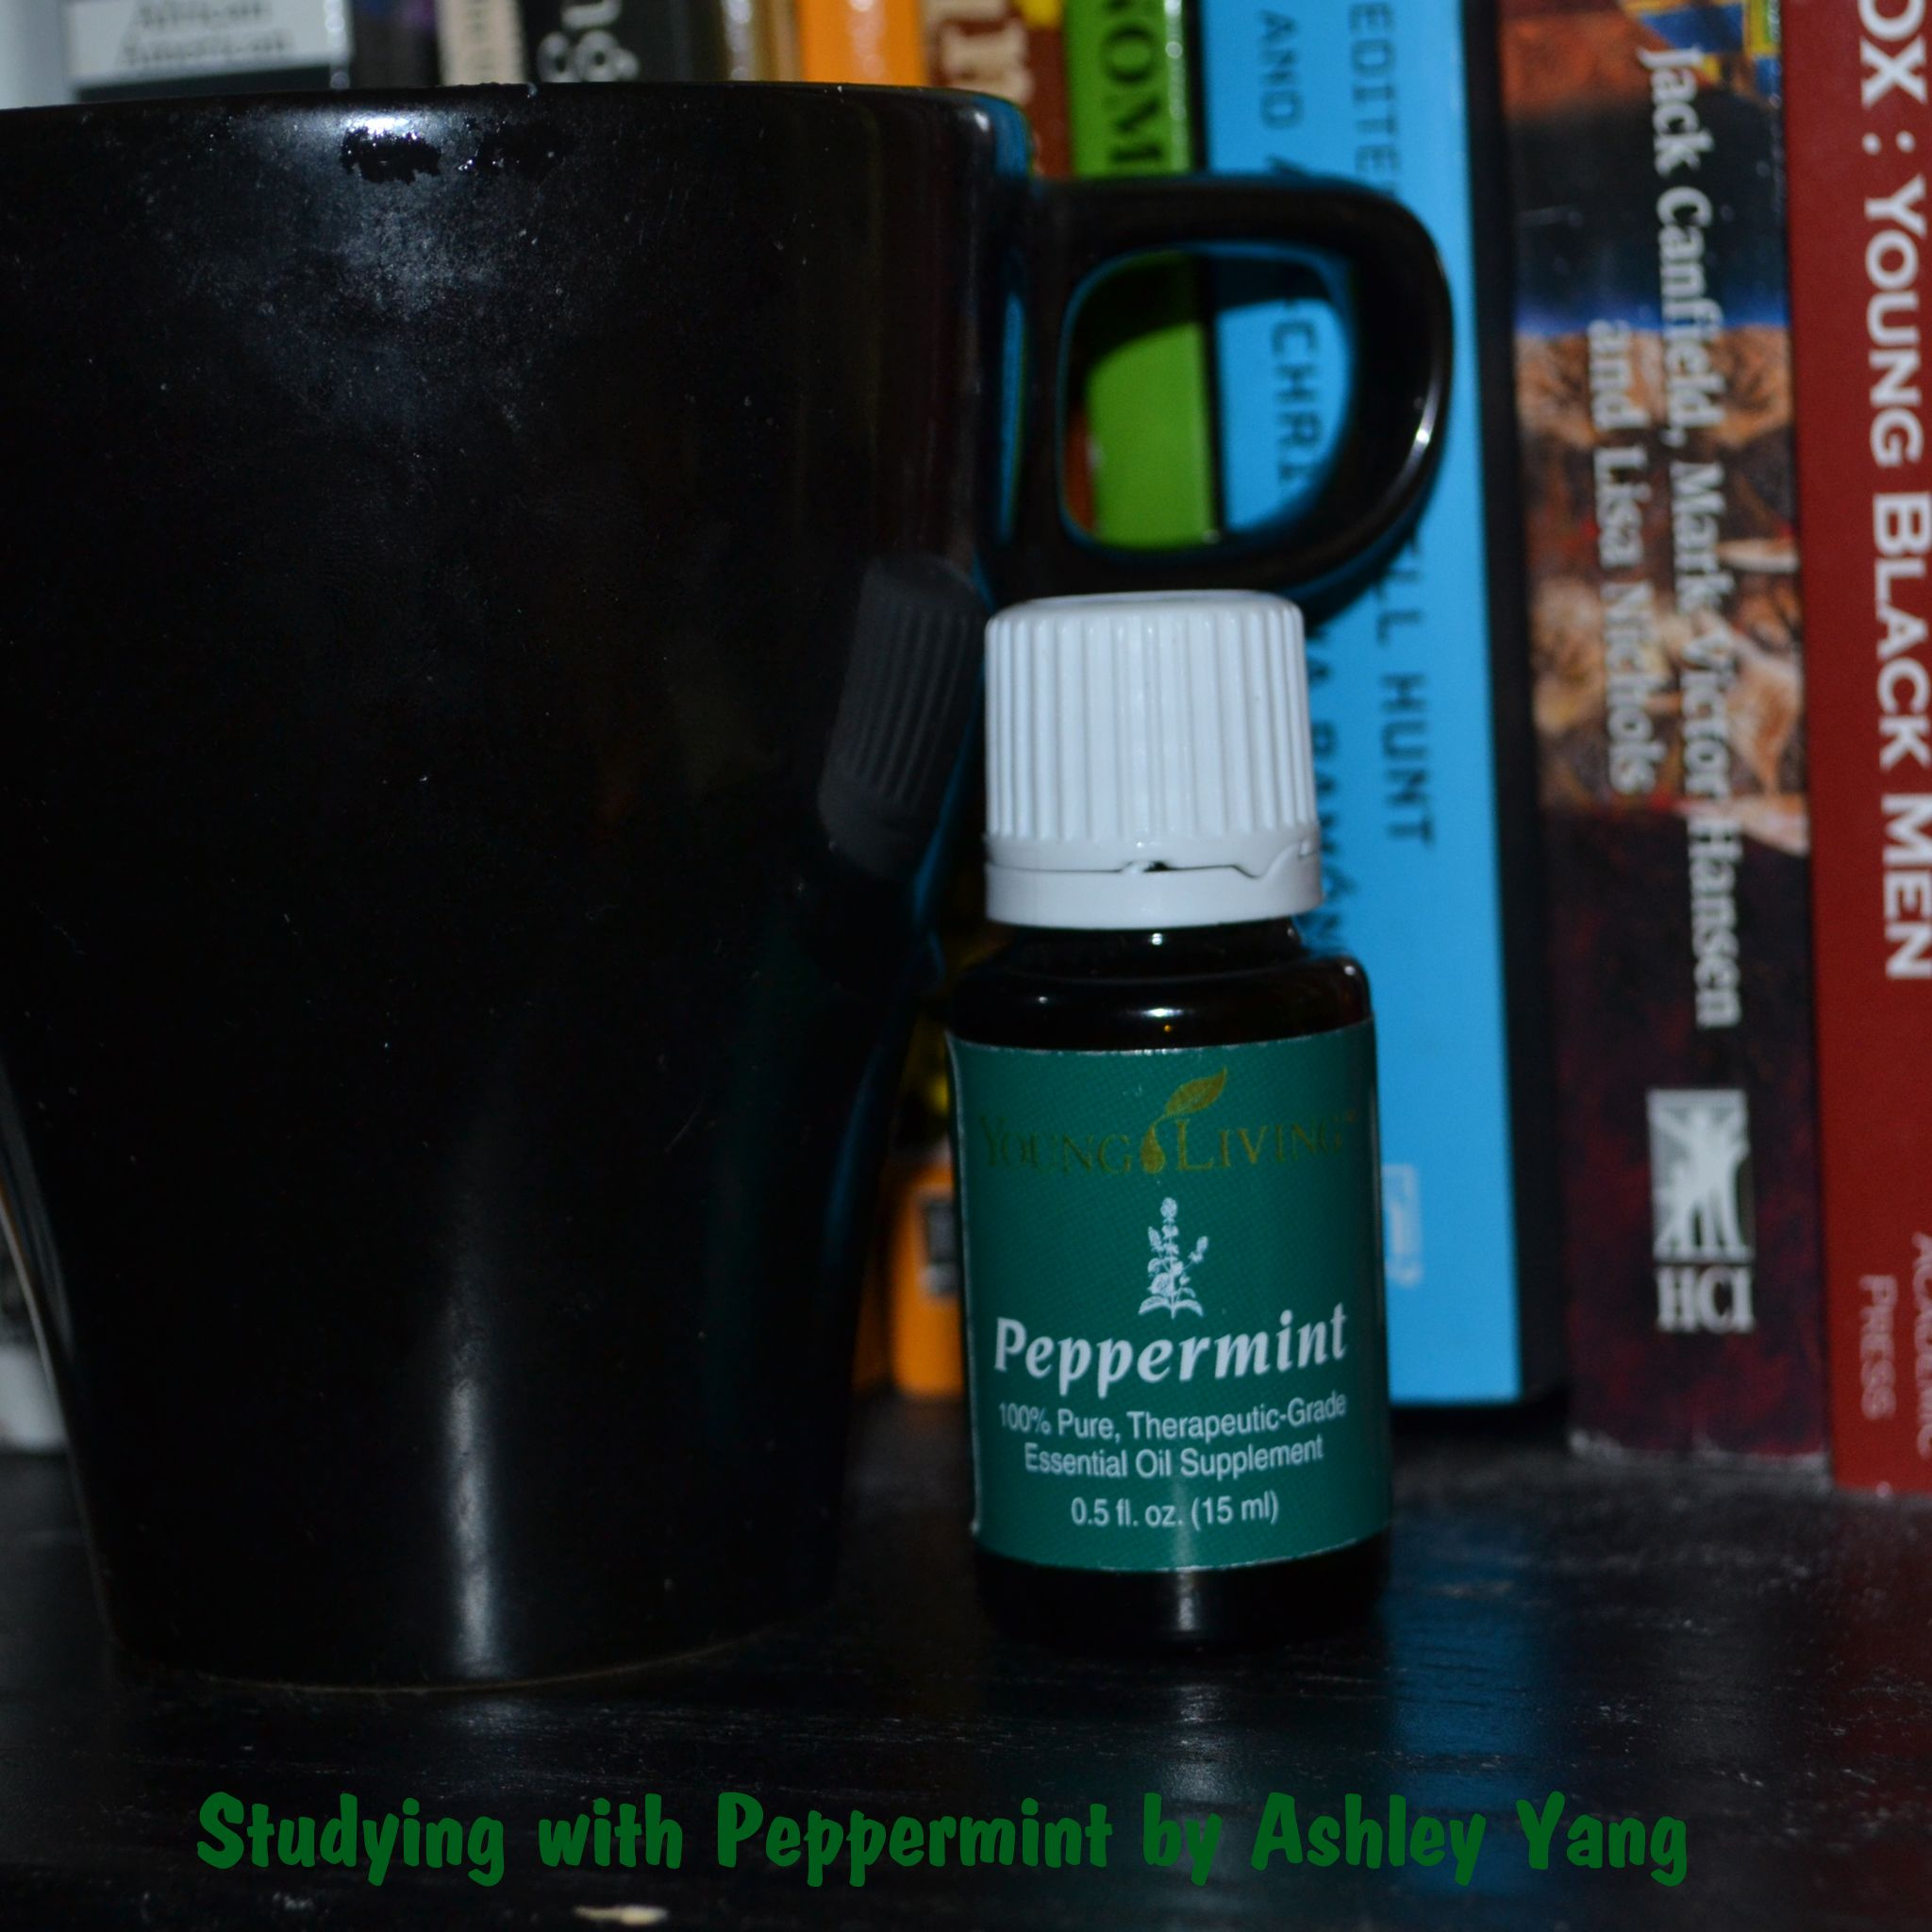 peppermint has student retain information.  studying with it and then when it come time for a test, put a drop of peppermint on a cotton ball in a ziplock bag and smell it, and help recall that night of studying.  it comes in the everyday oils kit